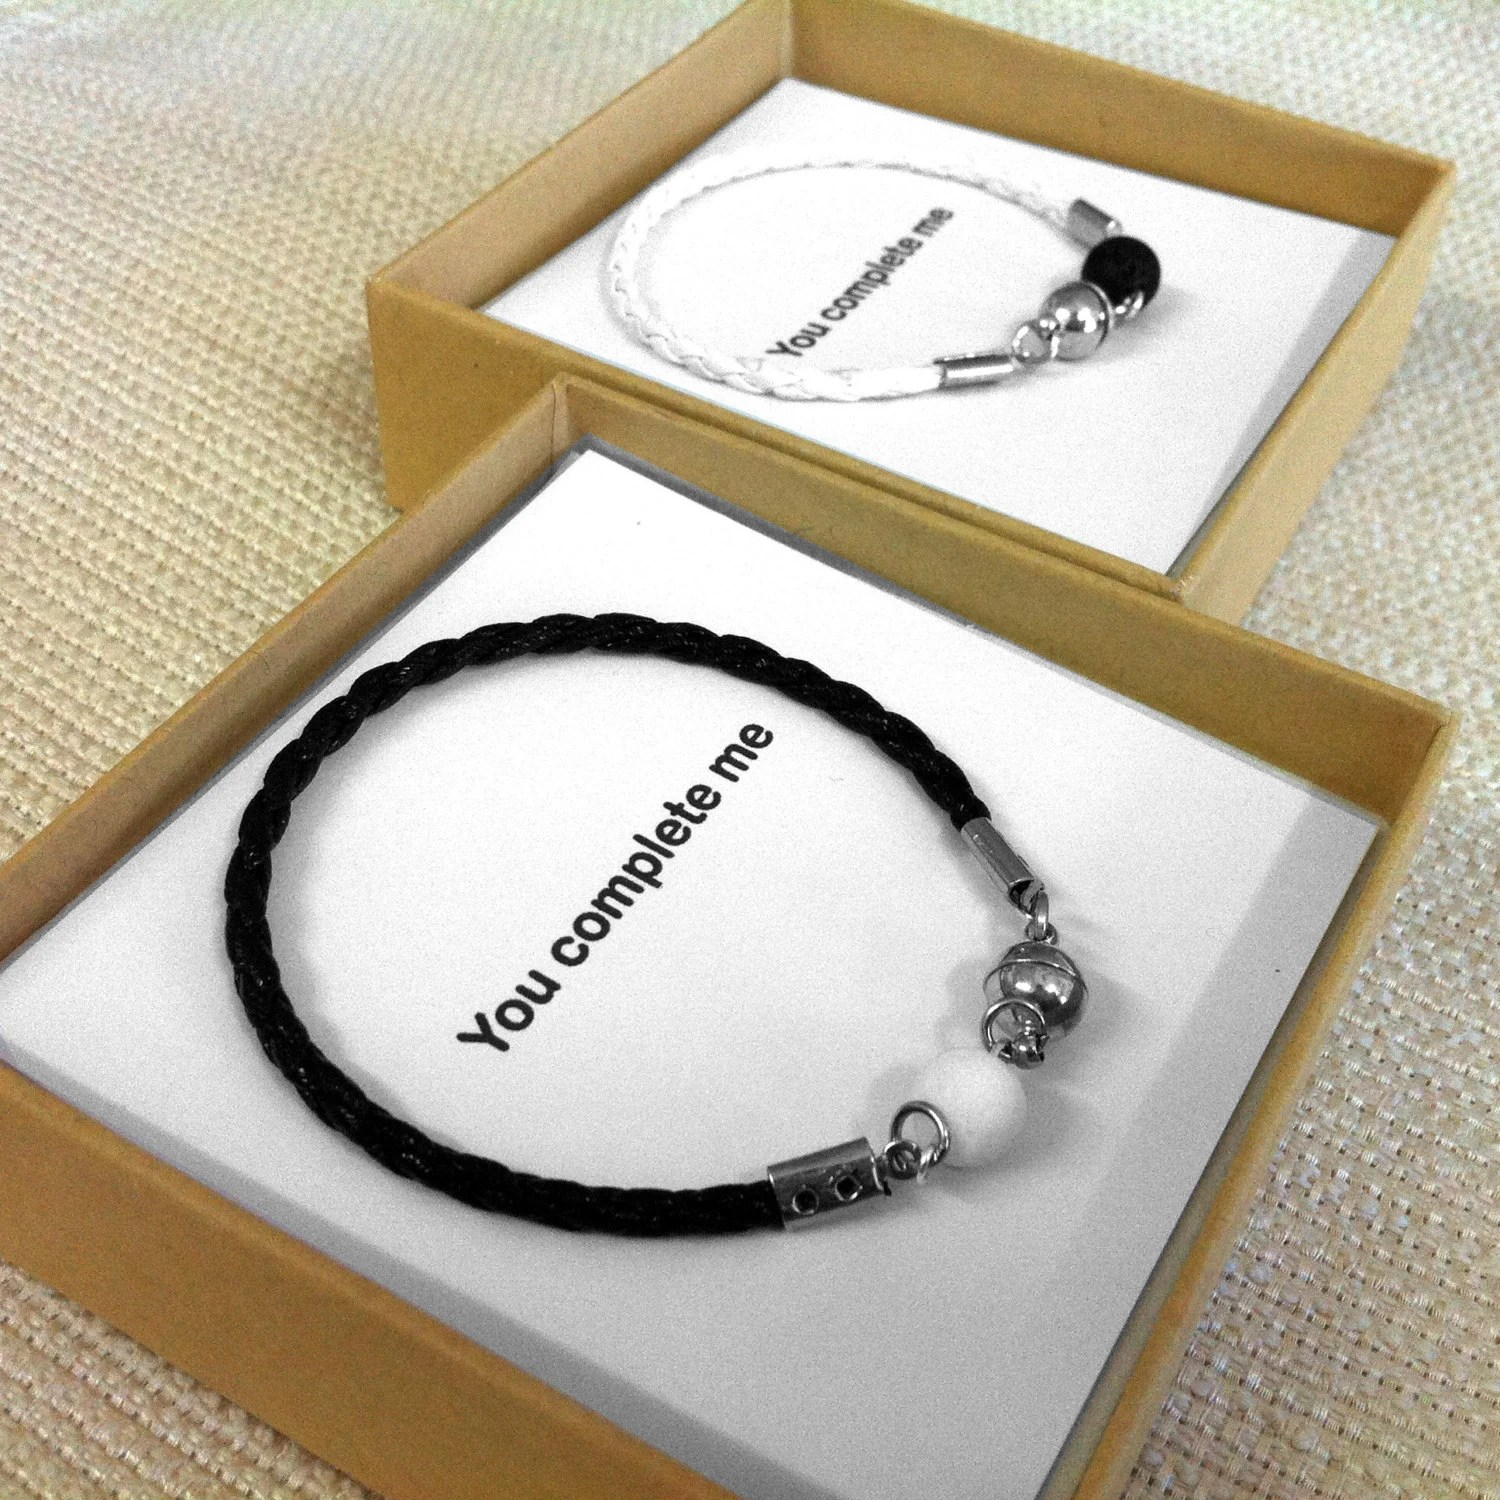 Couples Jewelry His And Her Bracelet His And Hers Gifts